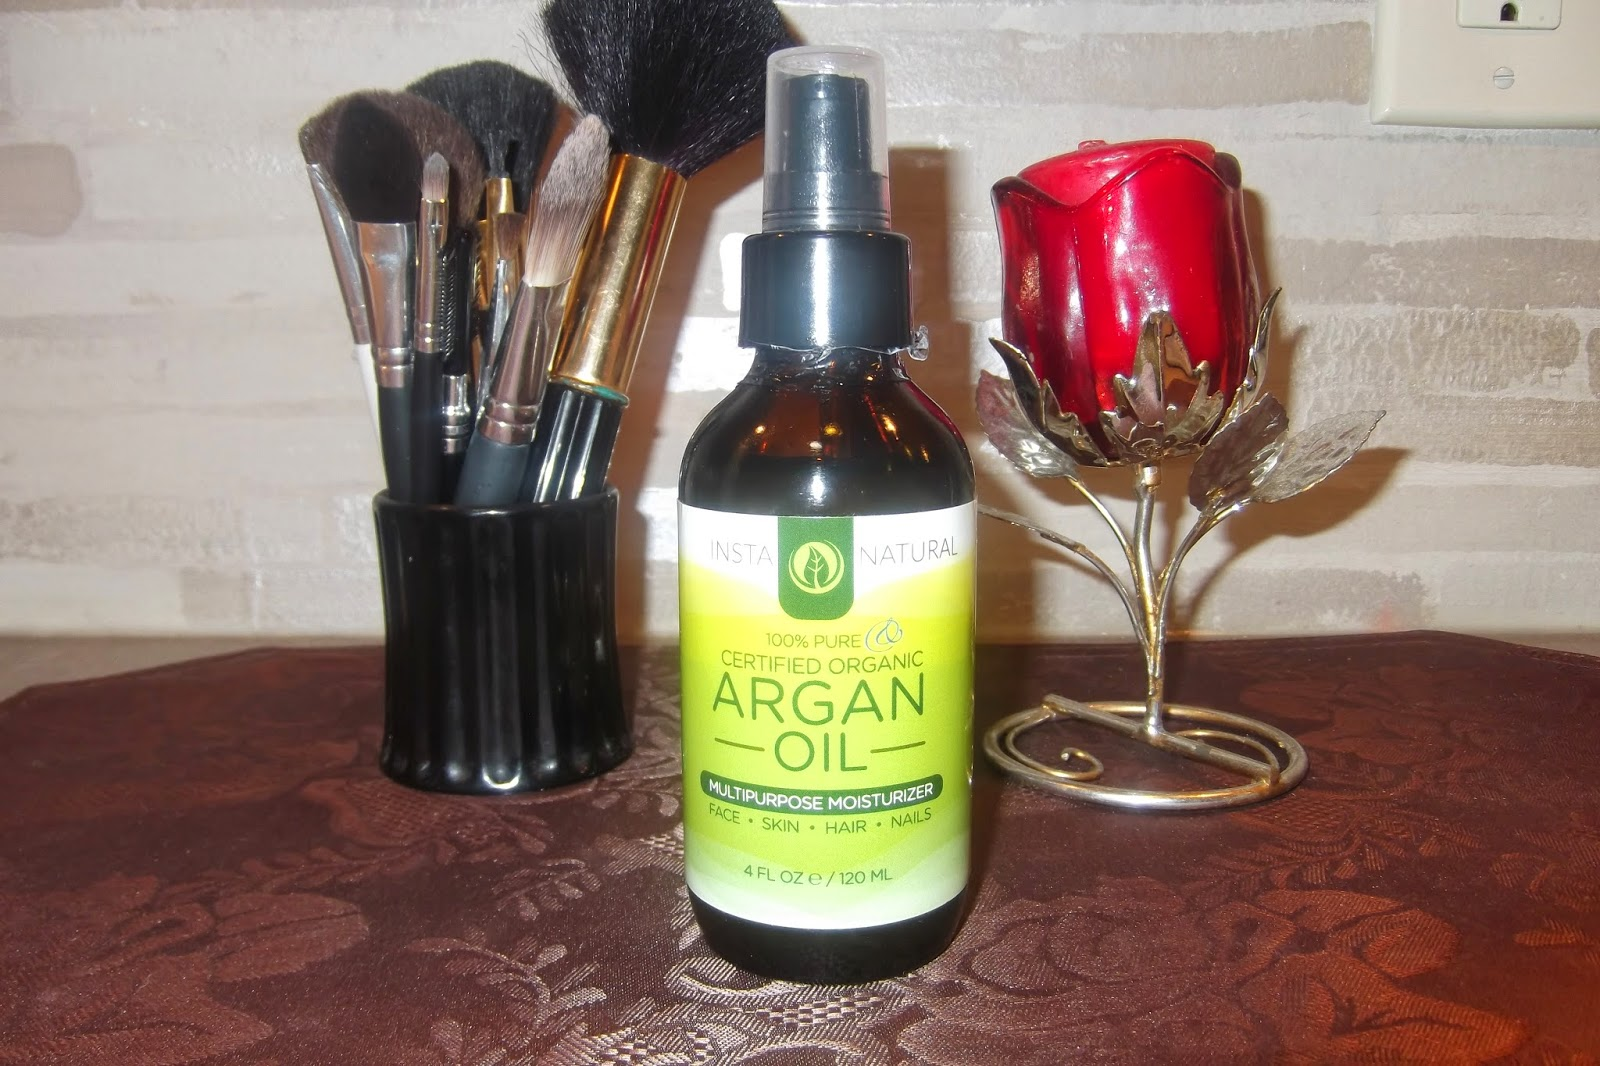 InstaNatural 100% Certified Organic Argan Oil-A Little Bit of Something